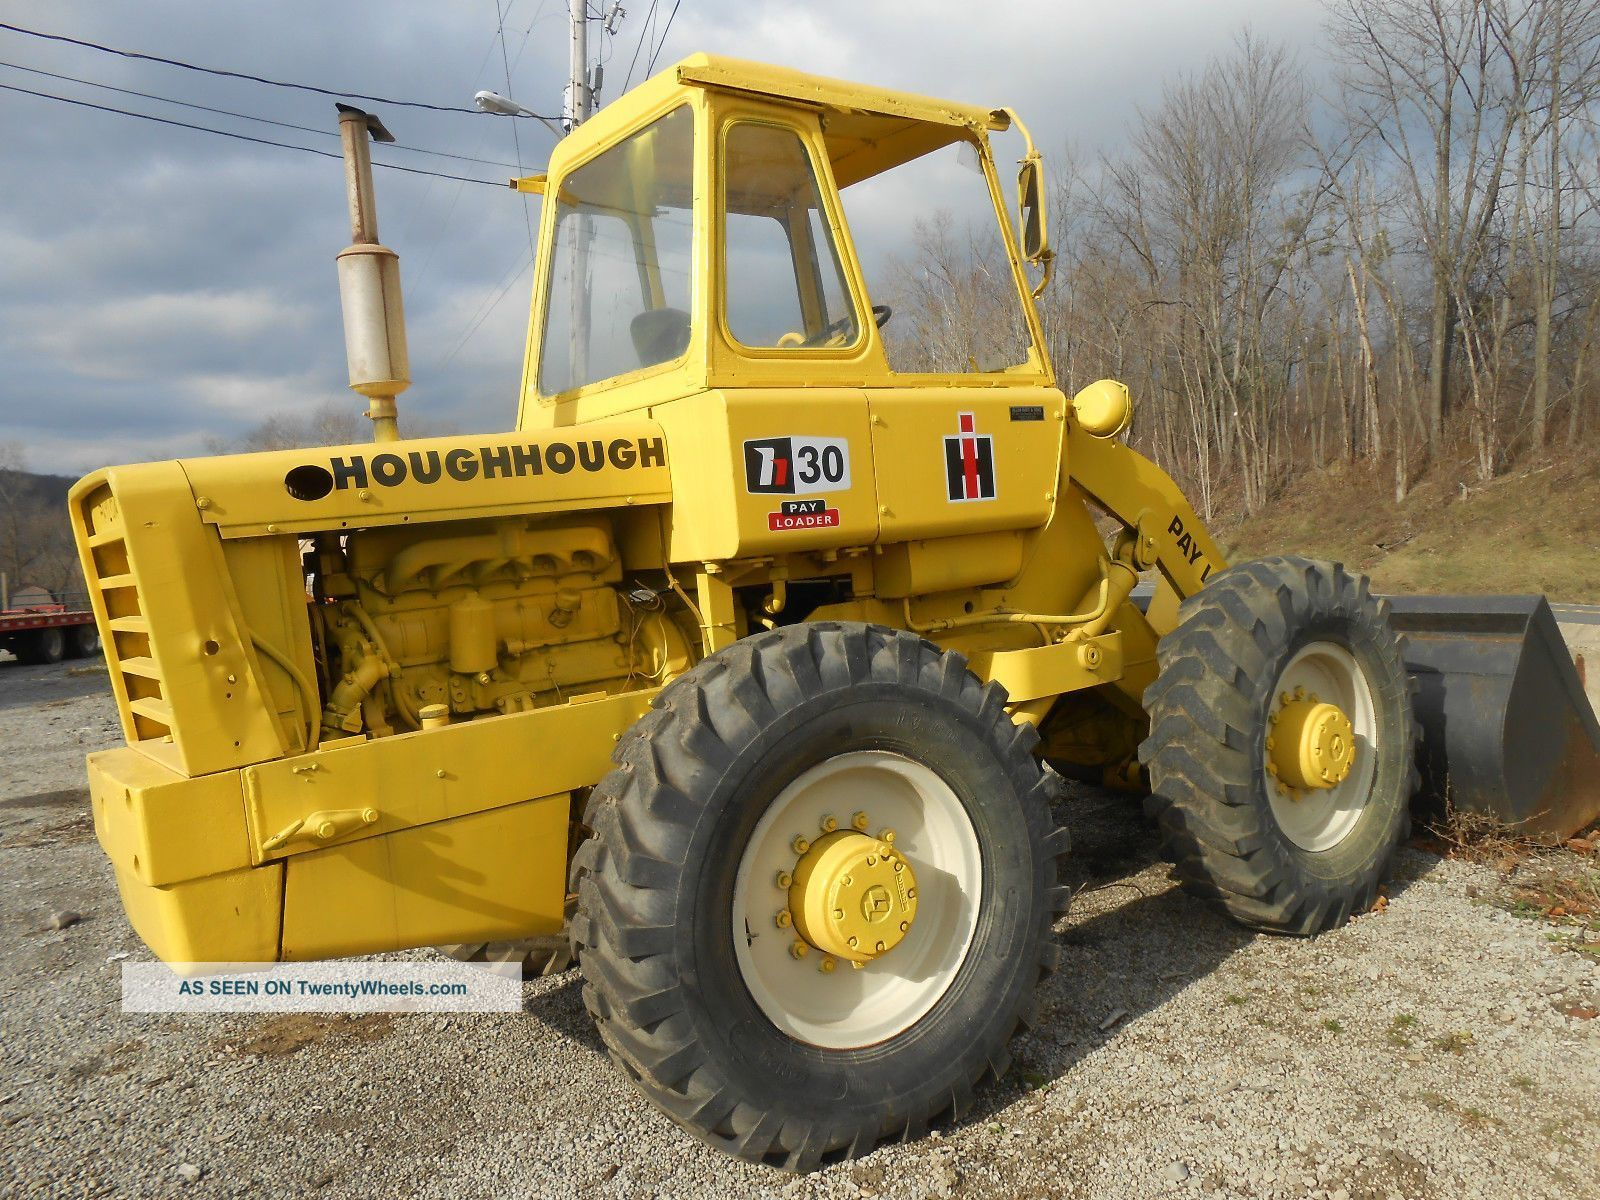 Hough h30 payloader | Construction Trucks and Equipment